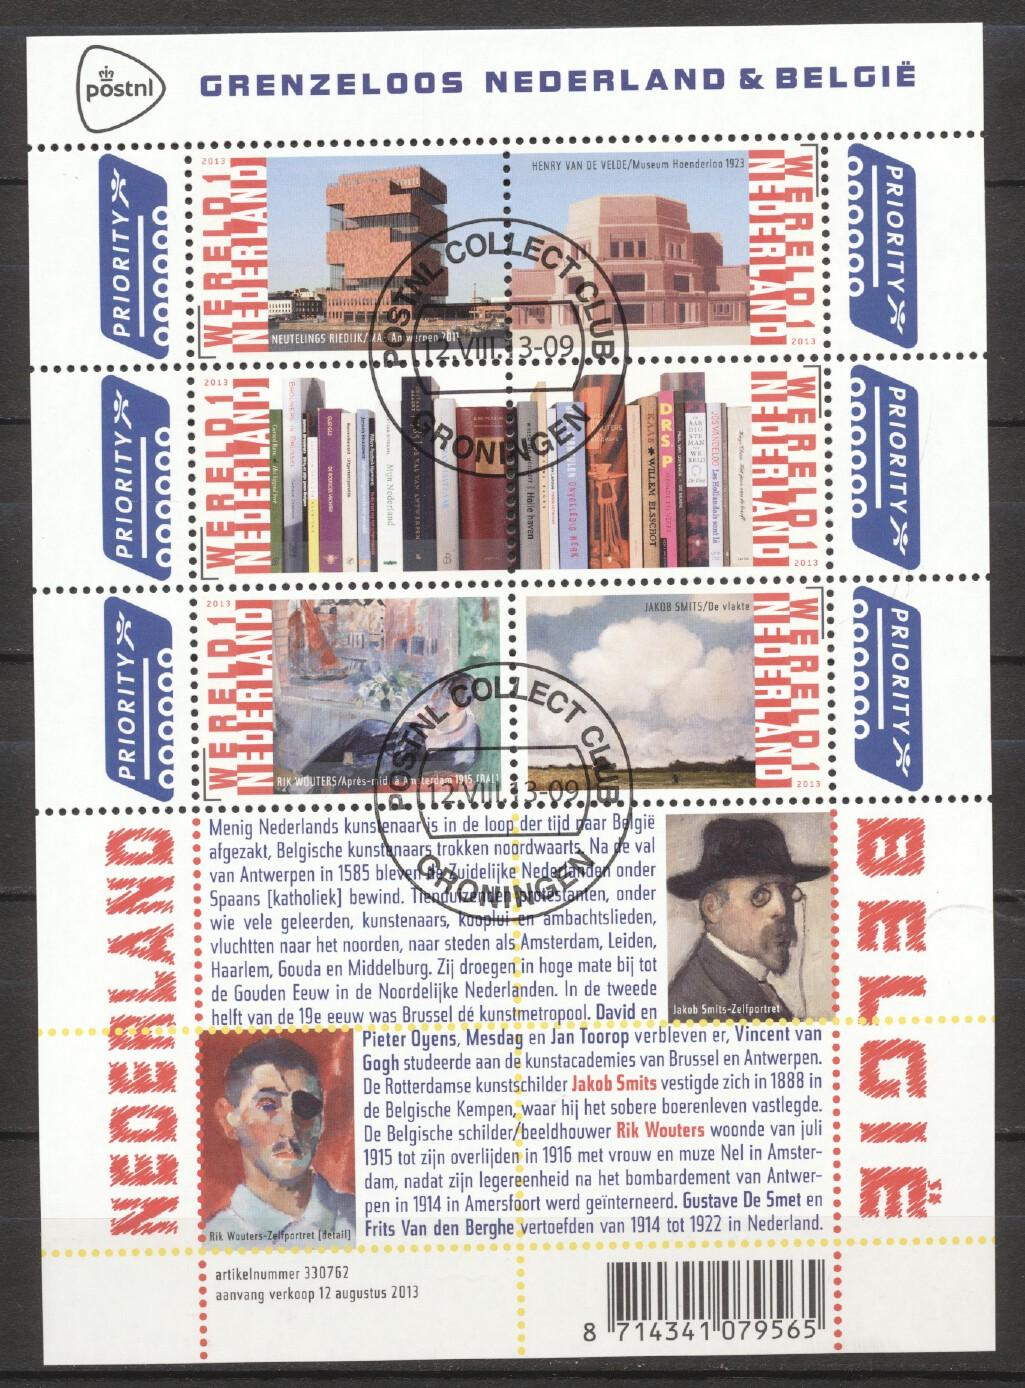 Stamps with Architecture, Art, Culture from Netherlands (image for product #254381)